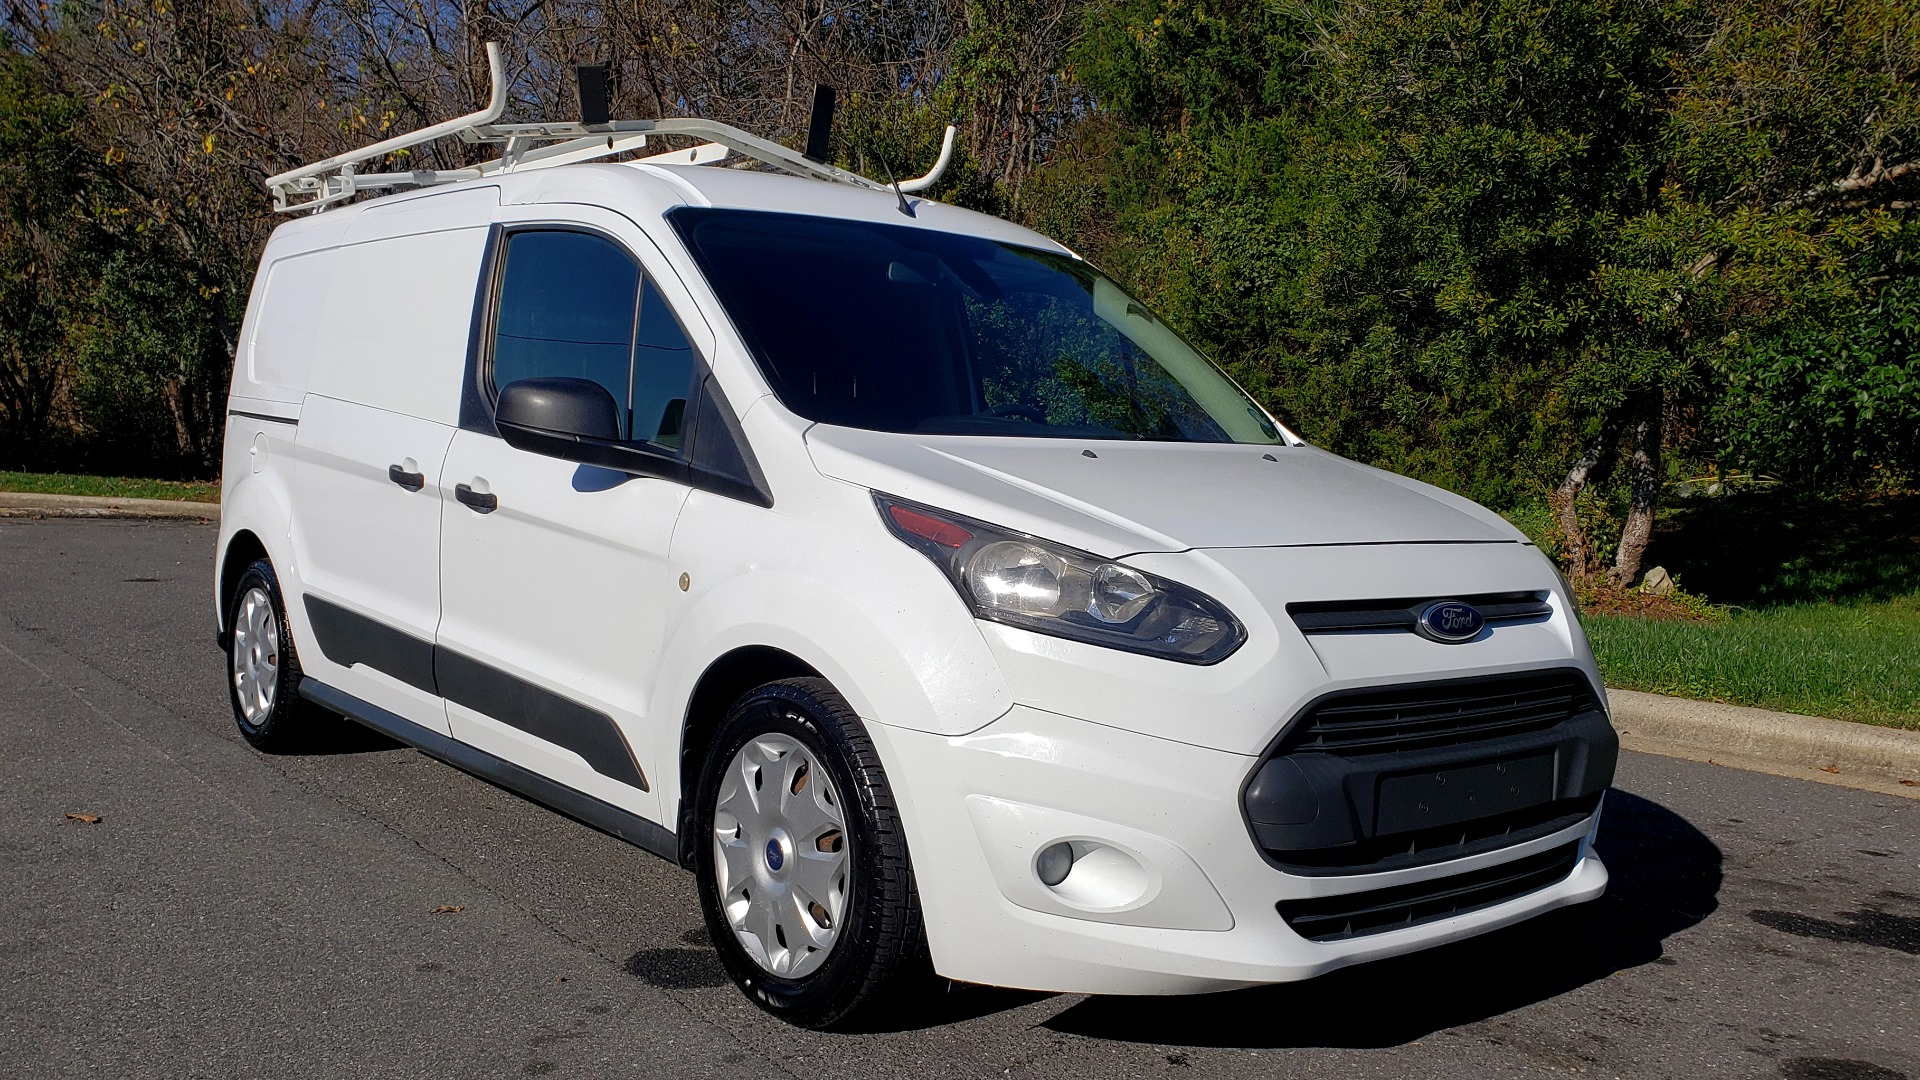 Used 2015 Ford TRANSIT CONNECT XLT CARGO VAN / 121-IN WB / 2.5L 4-CYL / AUTO / REARVIEW / WORK VAN for sale $12,995 at Formula Imports in Charlotte NC 28227 4